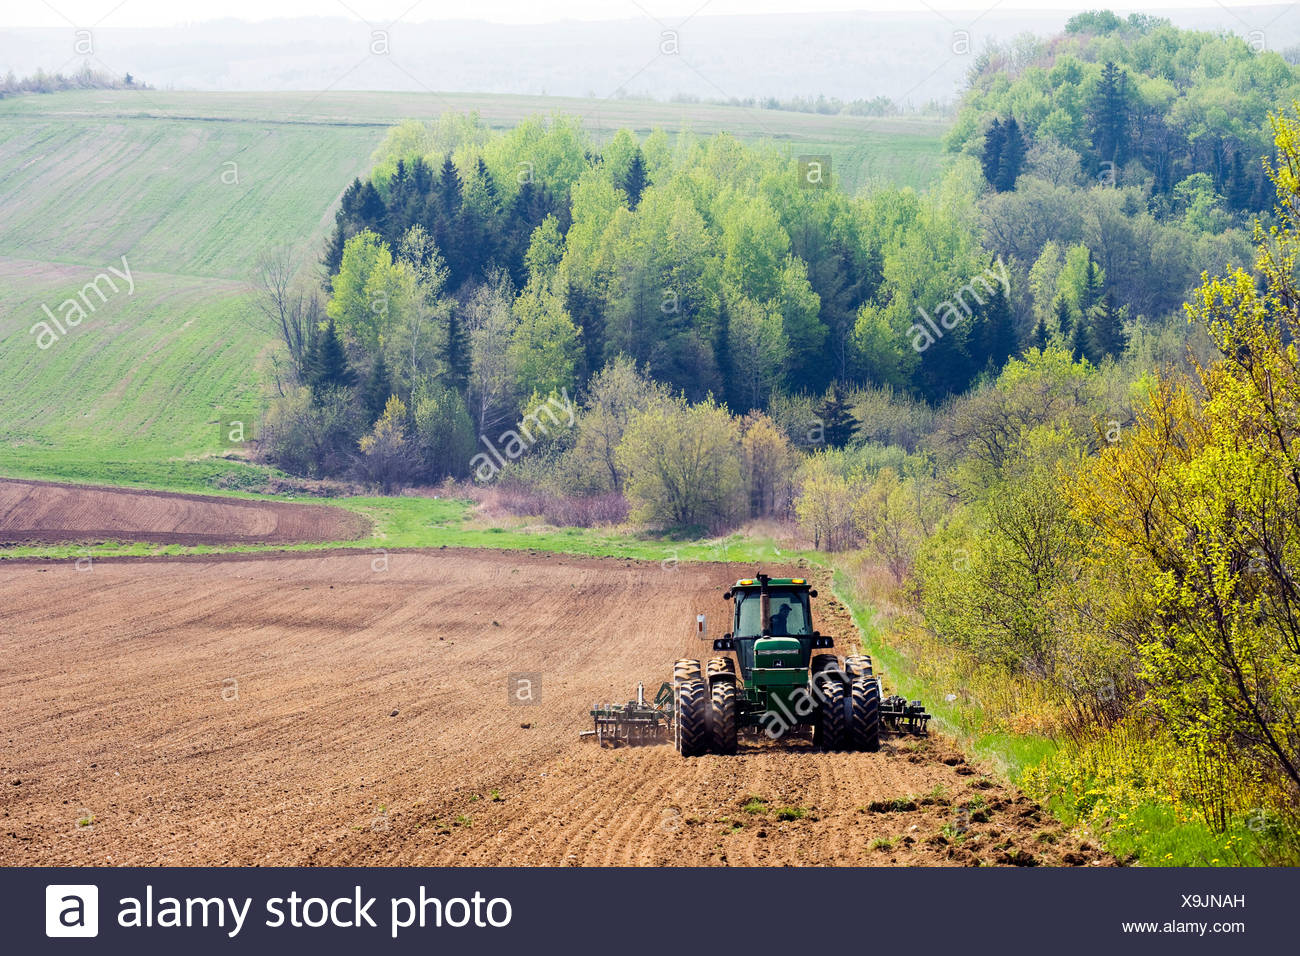 Harrowing potato fields in spring, Florenceville, New Brunswick, Canada, Agriculture - Stock Image